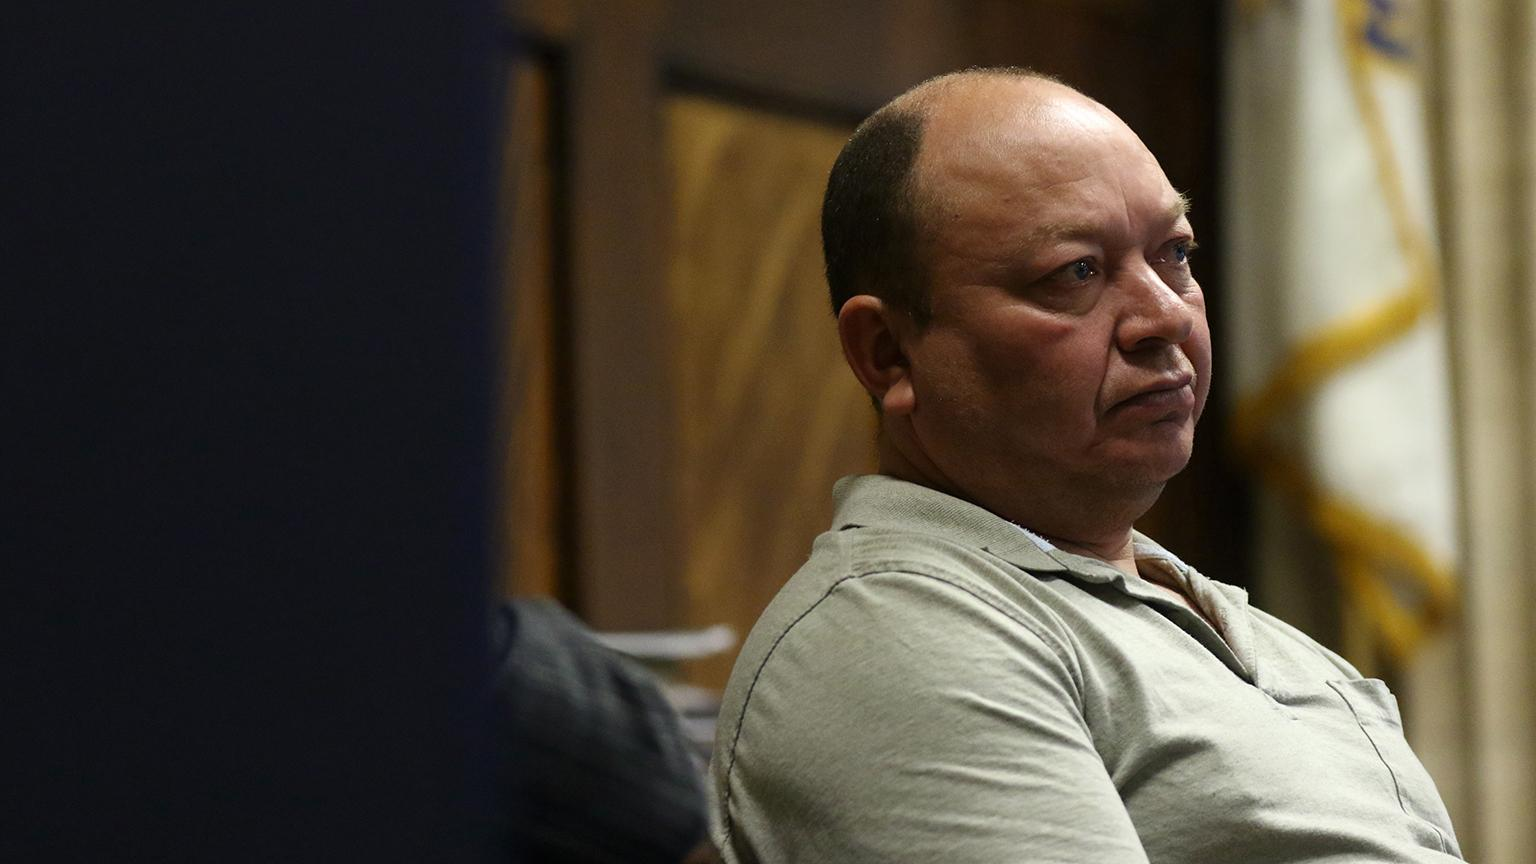 Truck driver Rudy Barillas testifies on Wednesday, Sept. 26, 2018. (John J. Kim / Chicago Tribune / Pool)